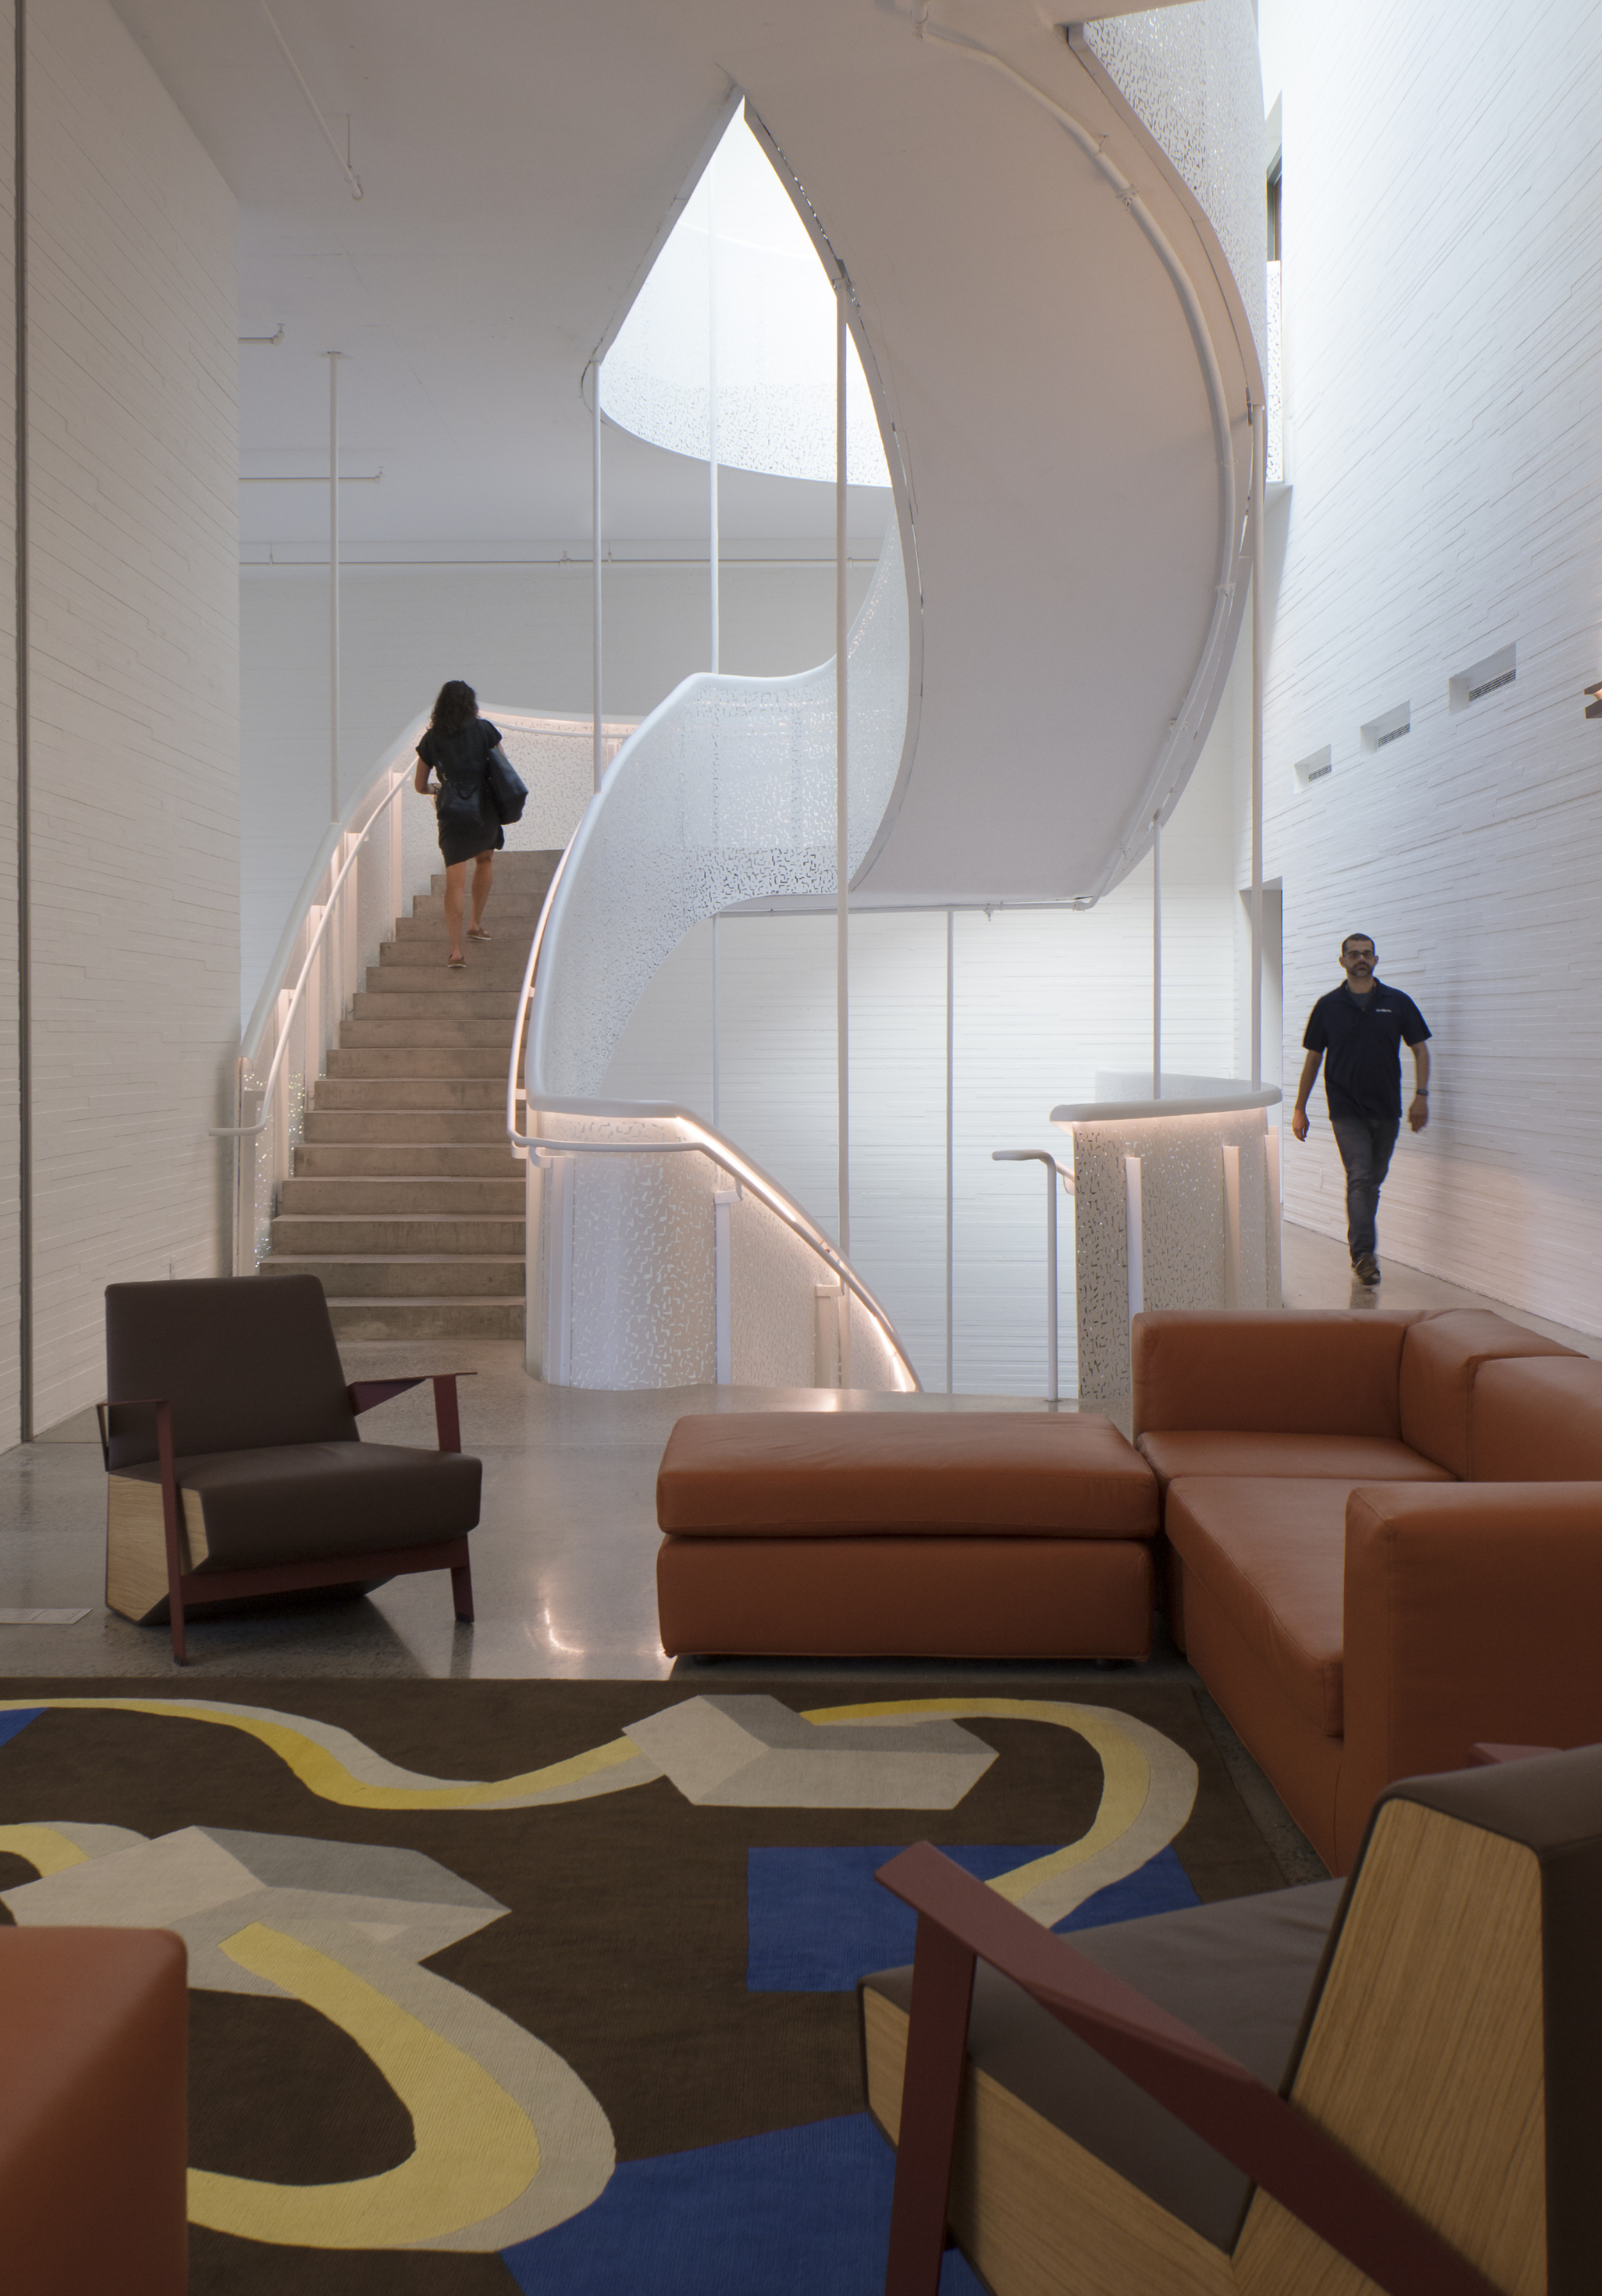 Lewis Arts Complex by Steven Holl Architects